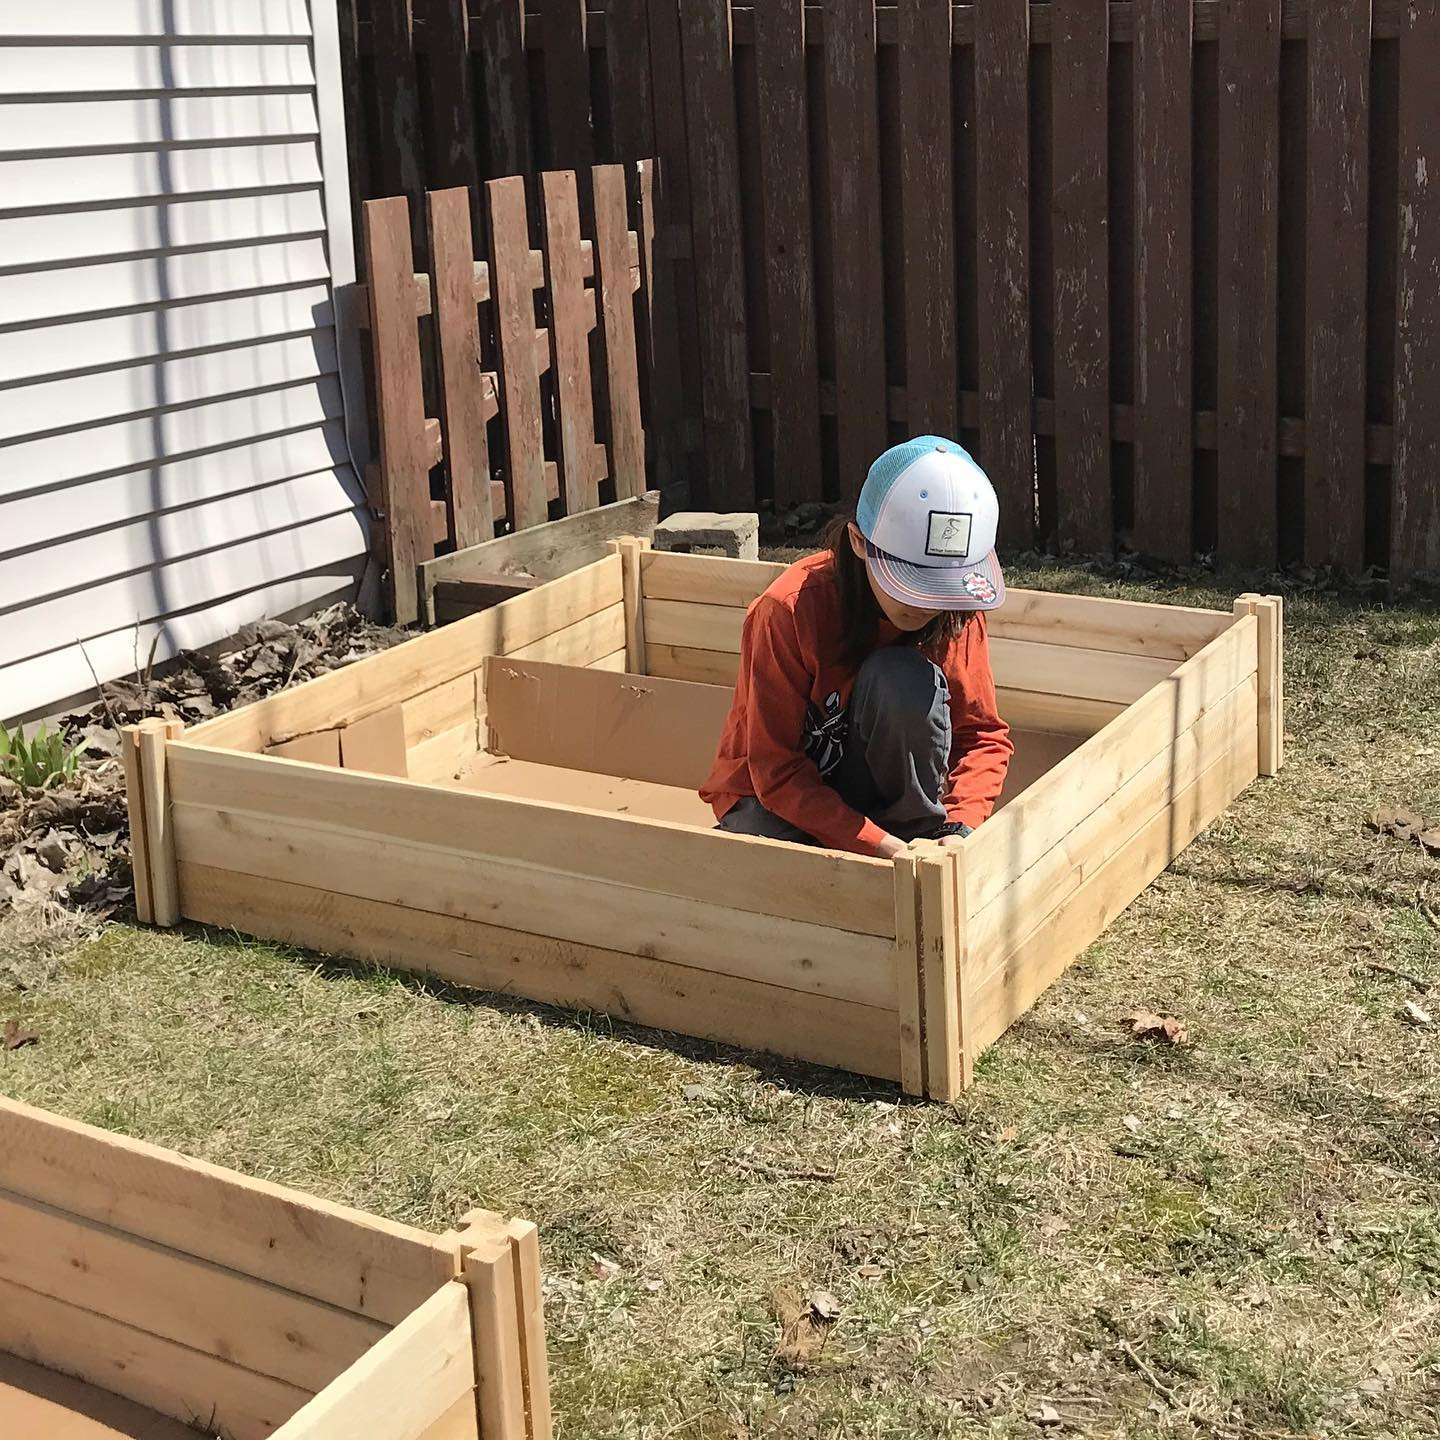 Tiny Trash Can building raised garden beds